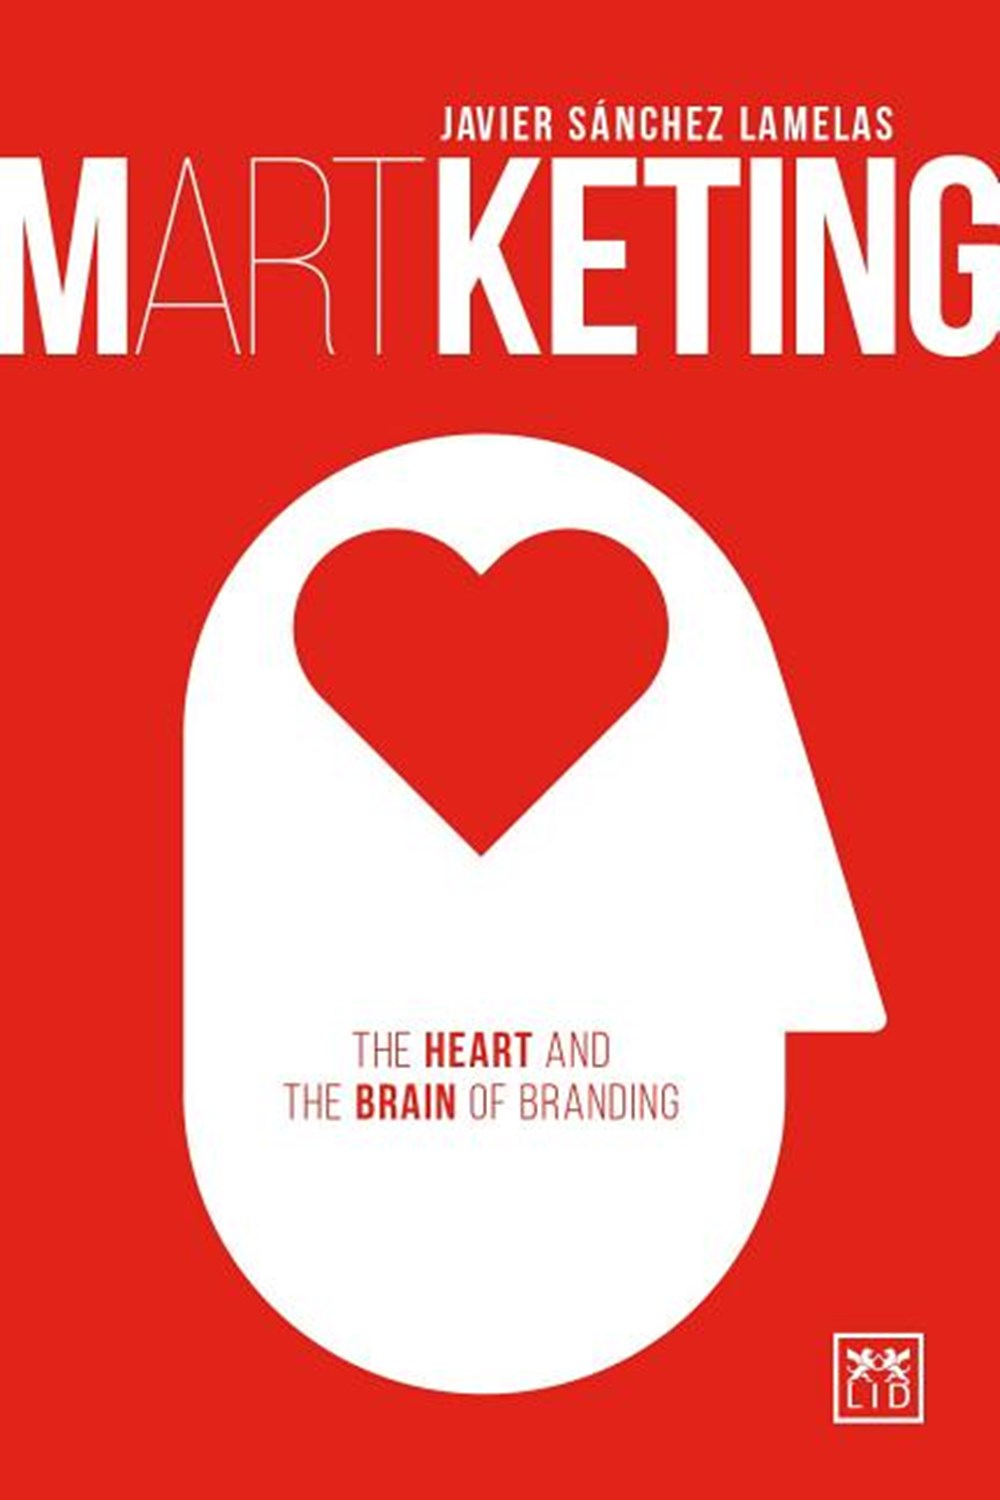 Martketing The Heart and the Brain of Branding